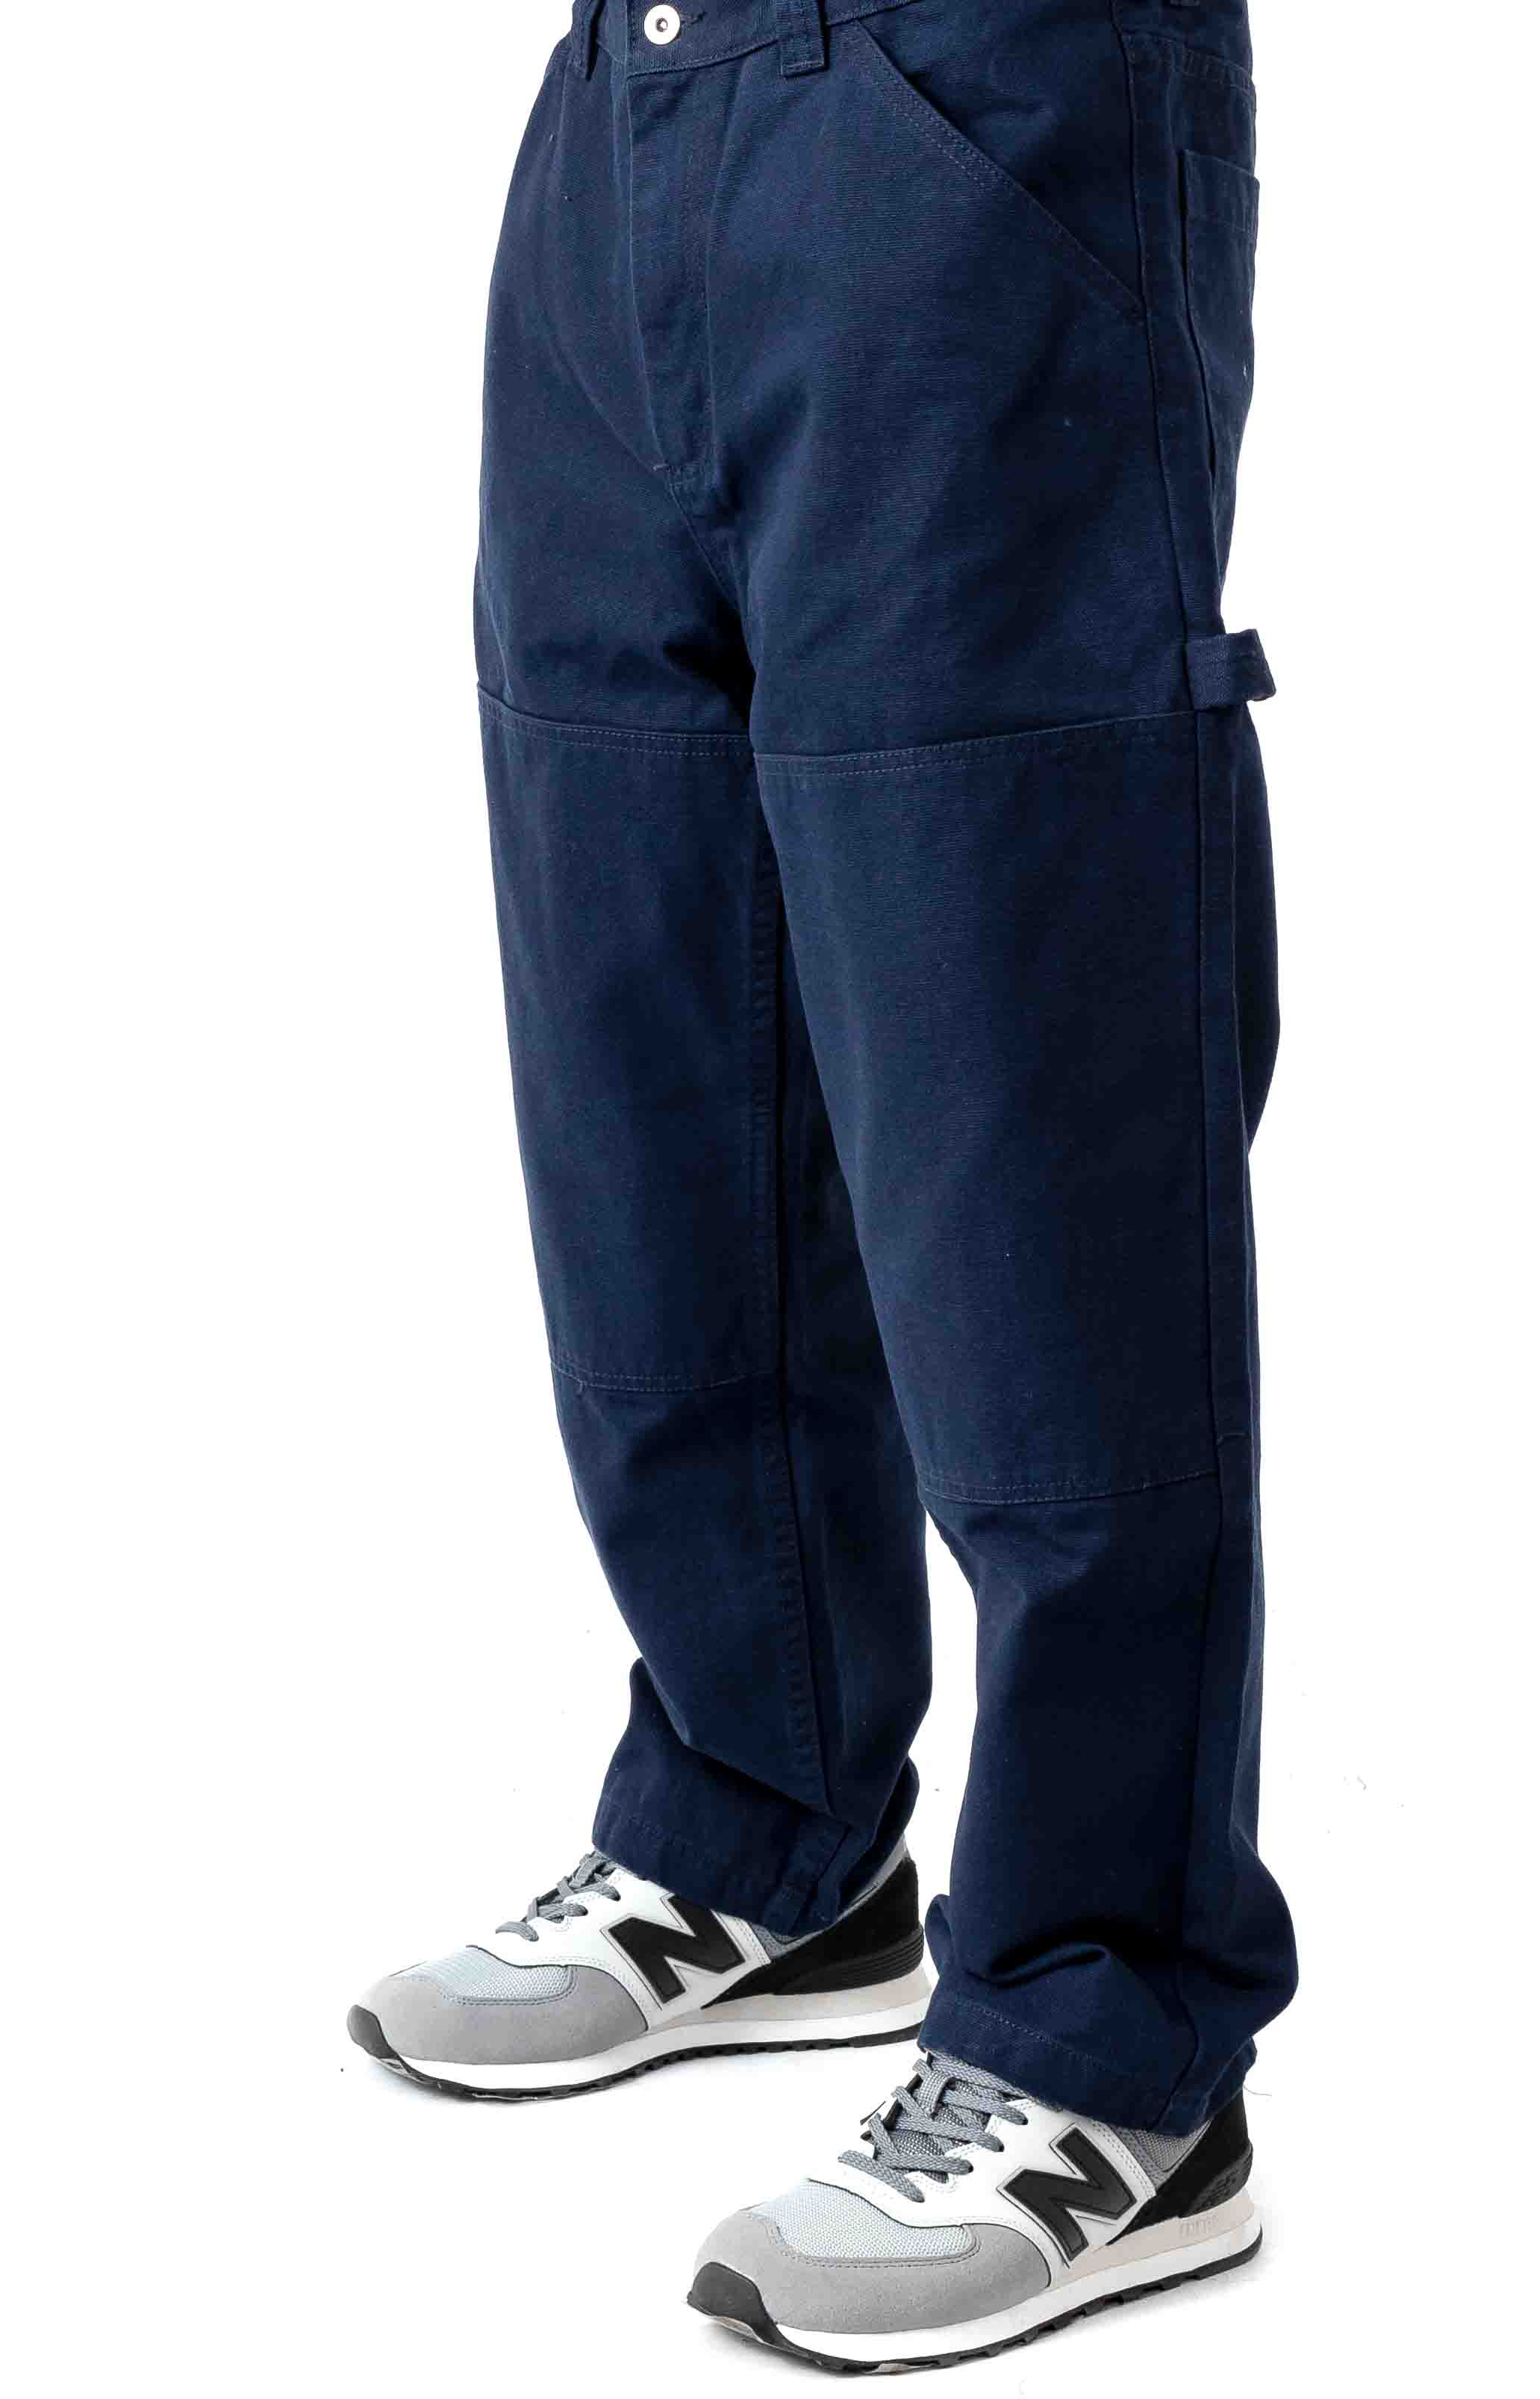 93 Cords Pants - Navy